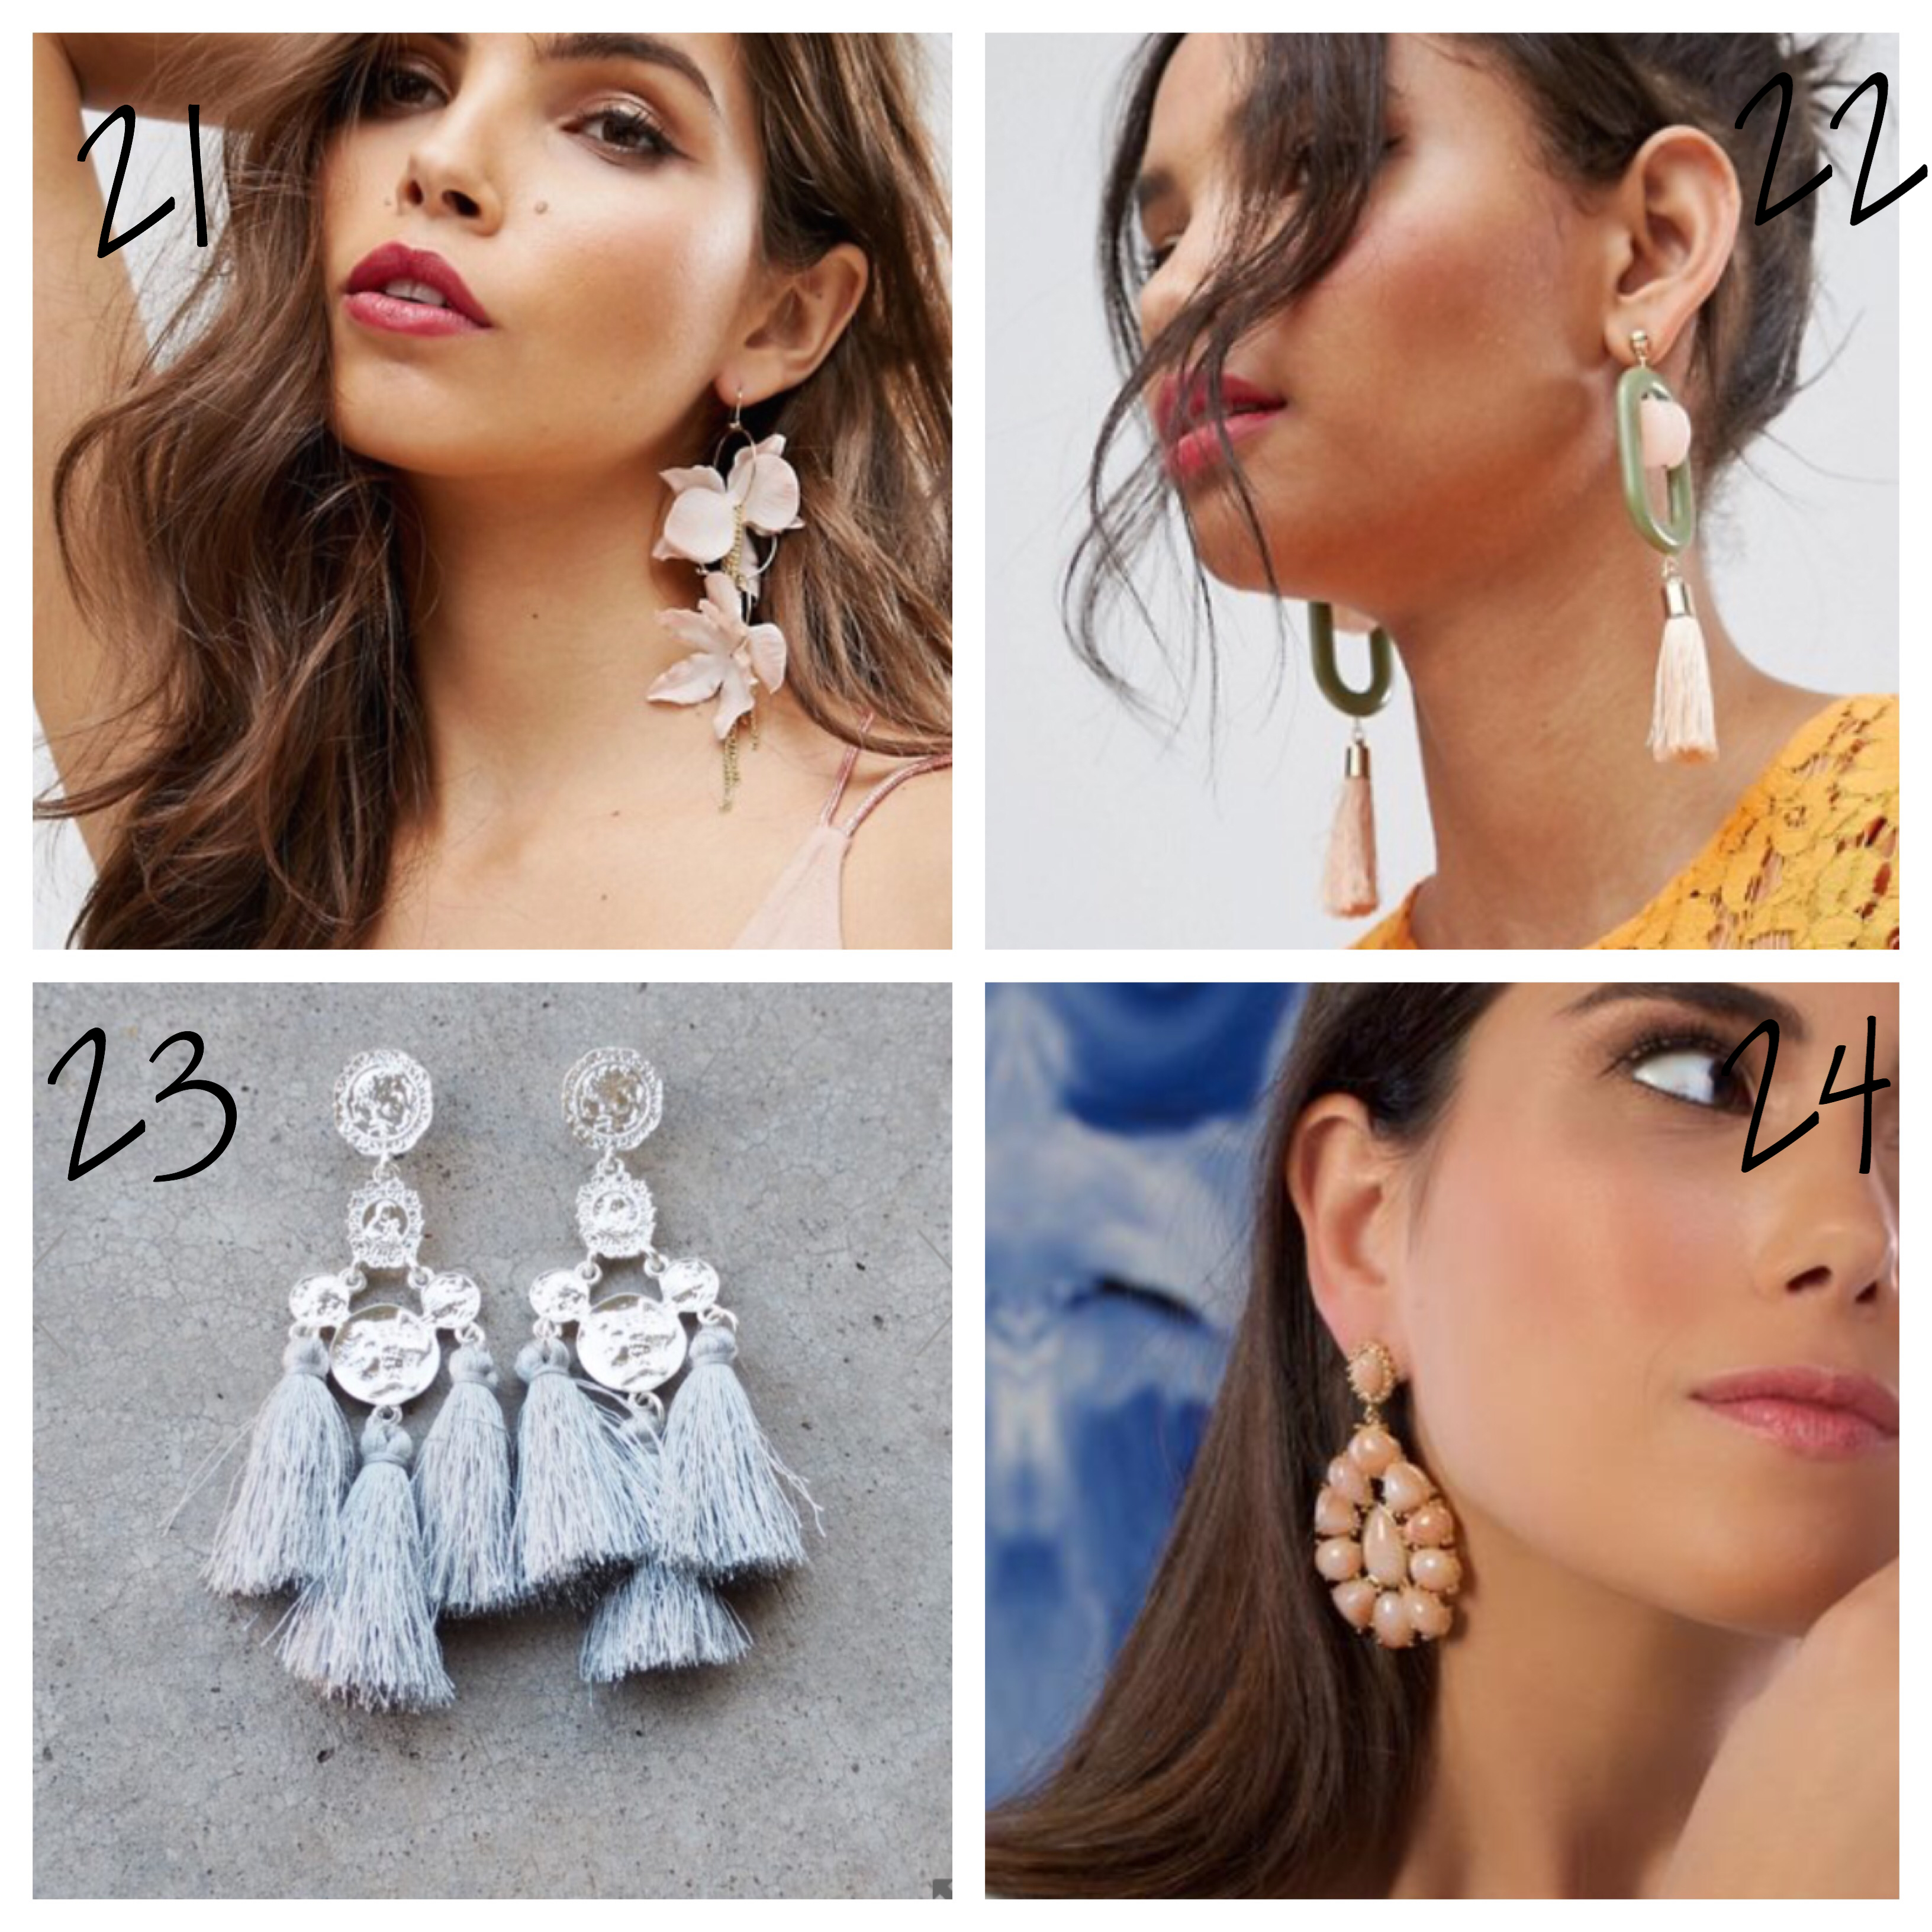 Statement earrings are an easy way to update your outfit for the season